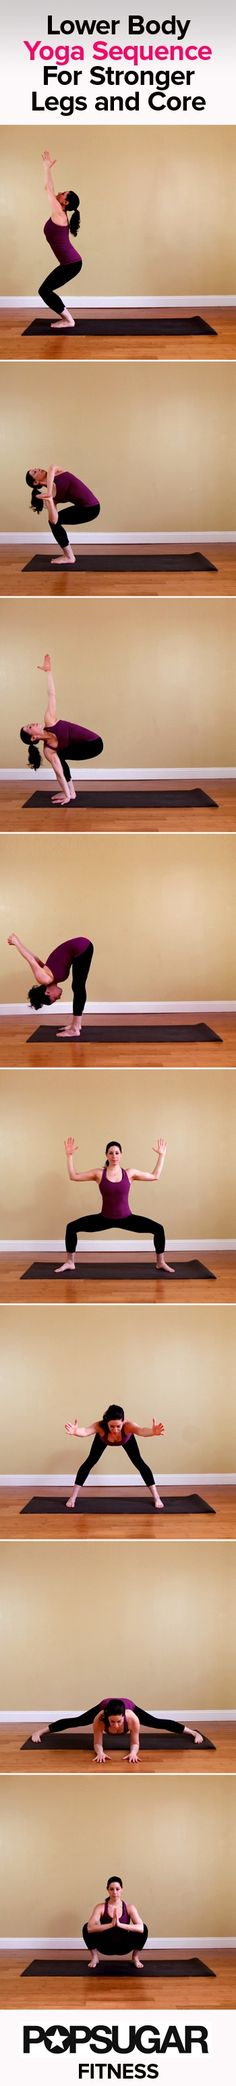 Yoga Moves For Stronger Legs and Core